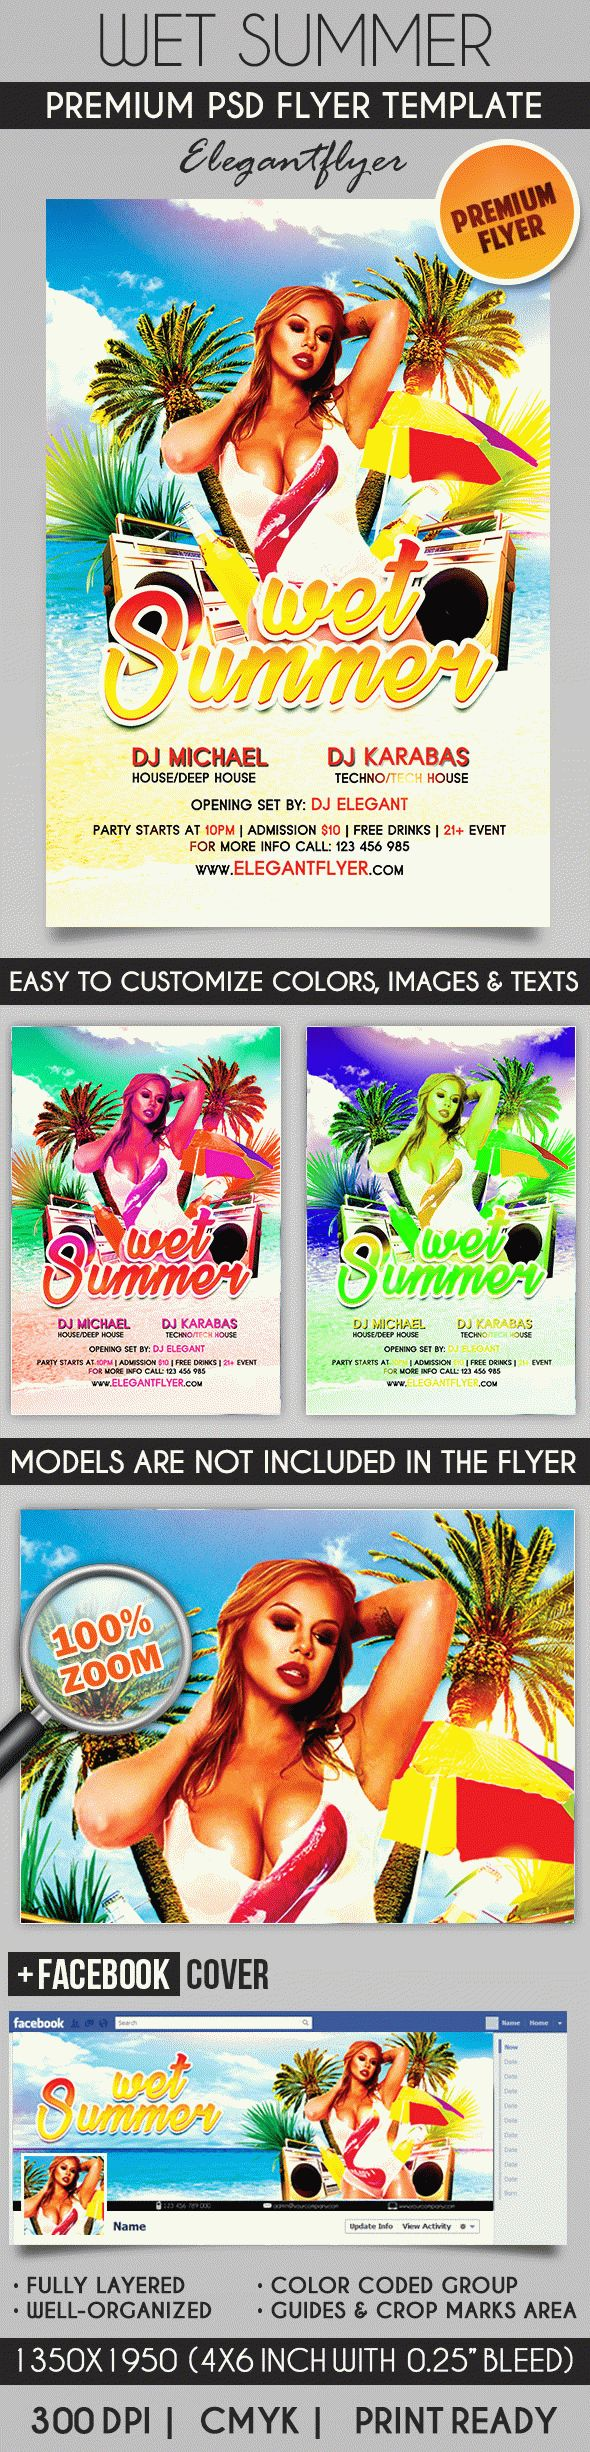 Wet Summer – Flyer PSD Template + Facebook Cover